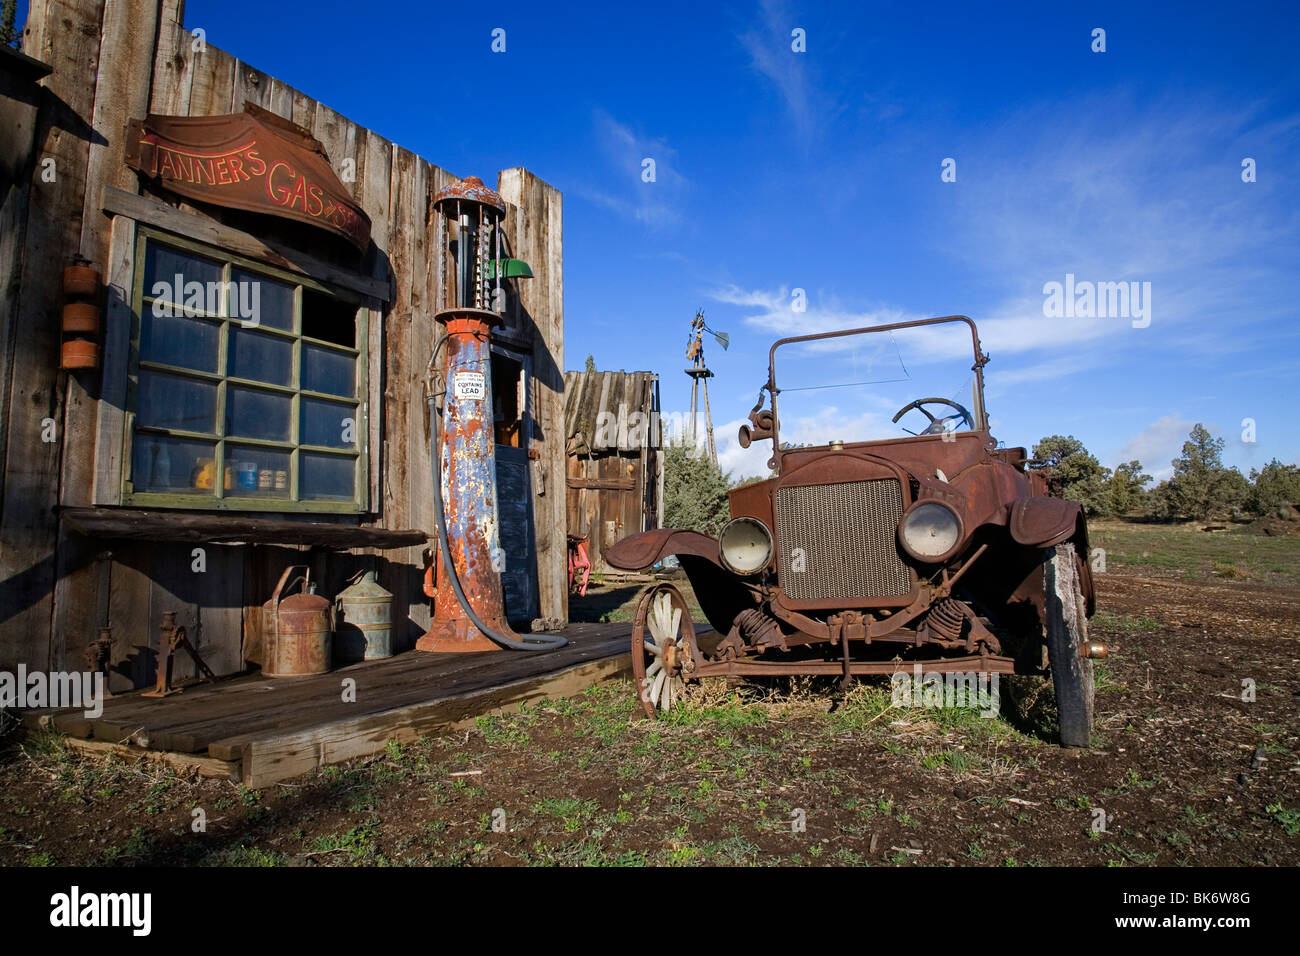 An ancient rusted antique car, gasoline pump, and gasoline station - Stock Image